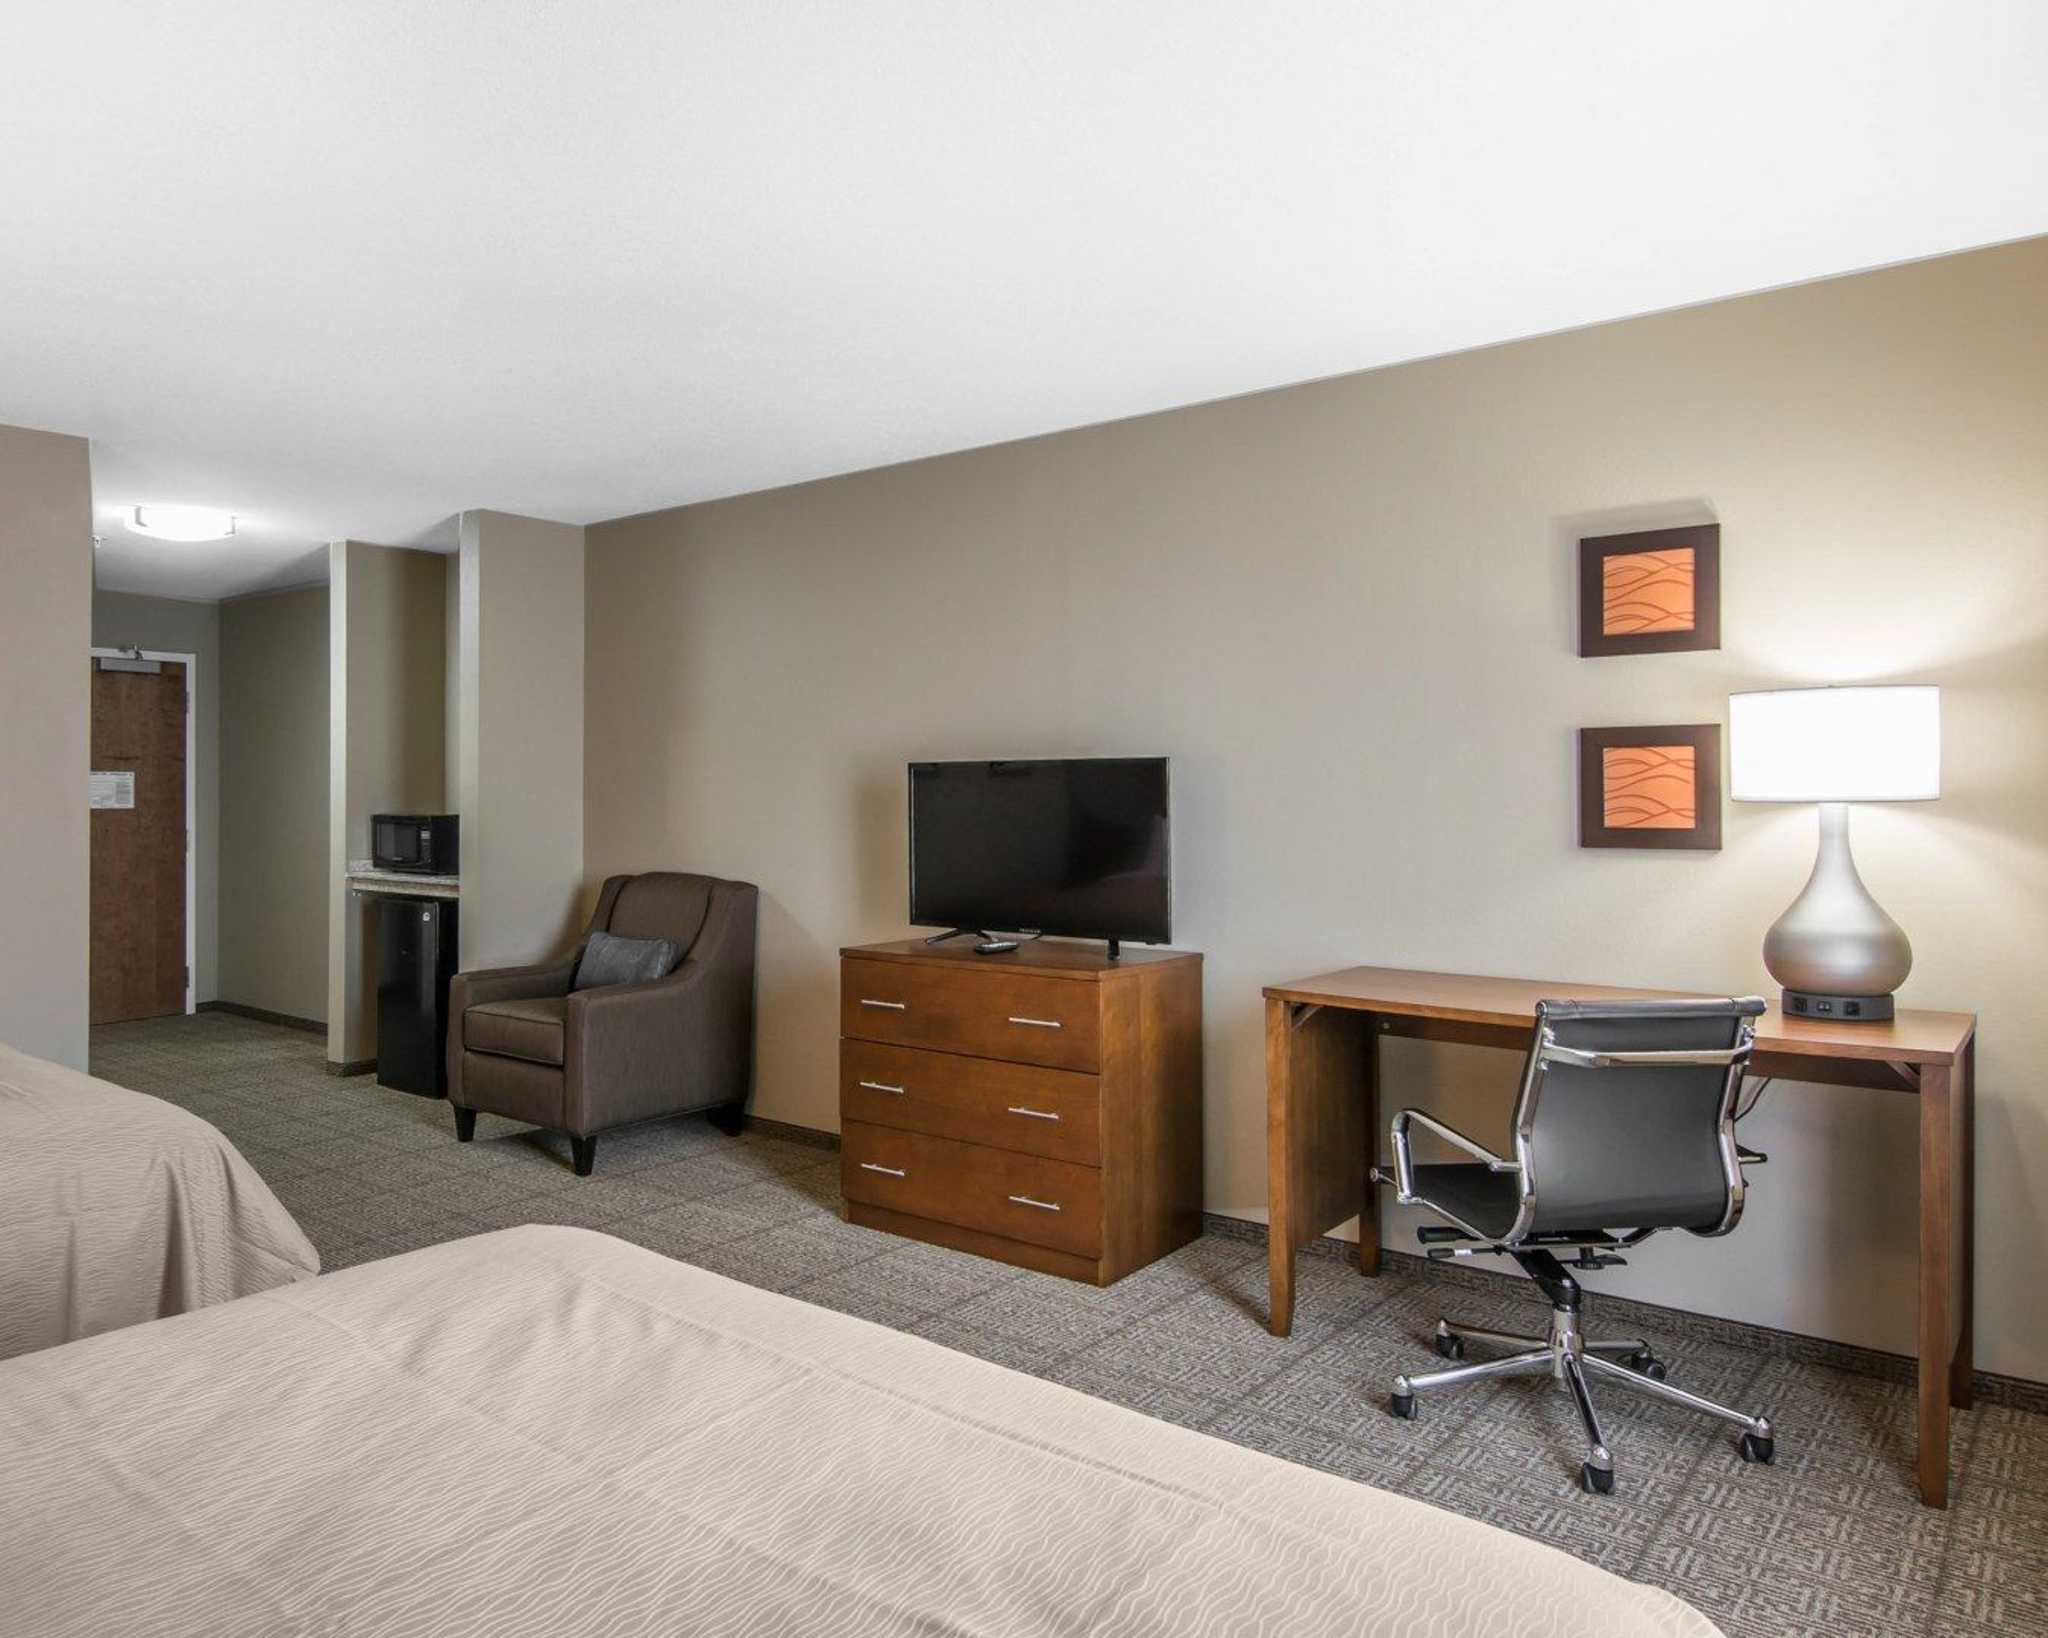 Comfort Inn South Chesterfield - Colonial Heights image 3